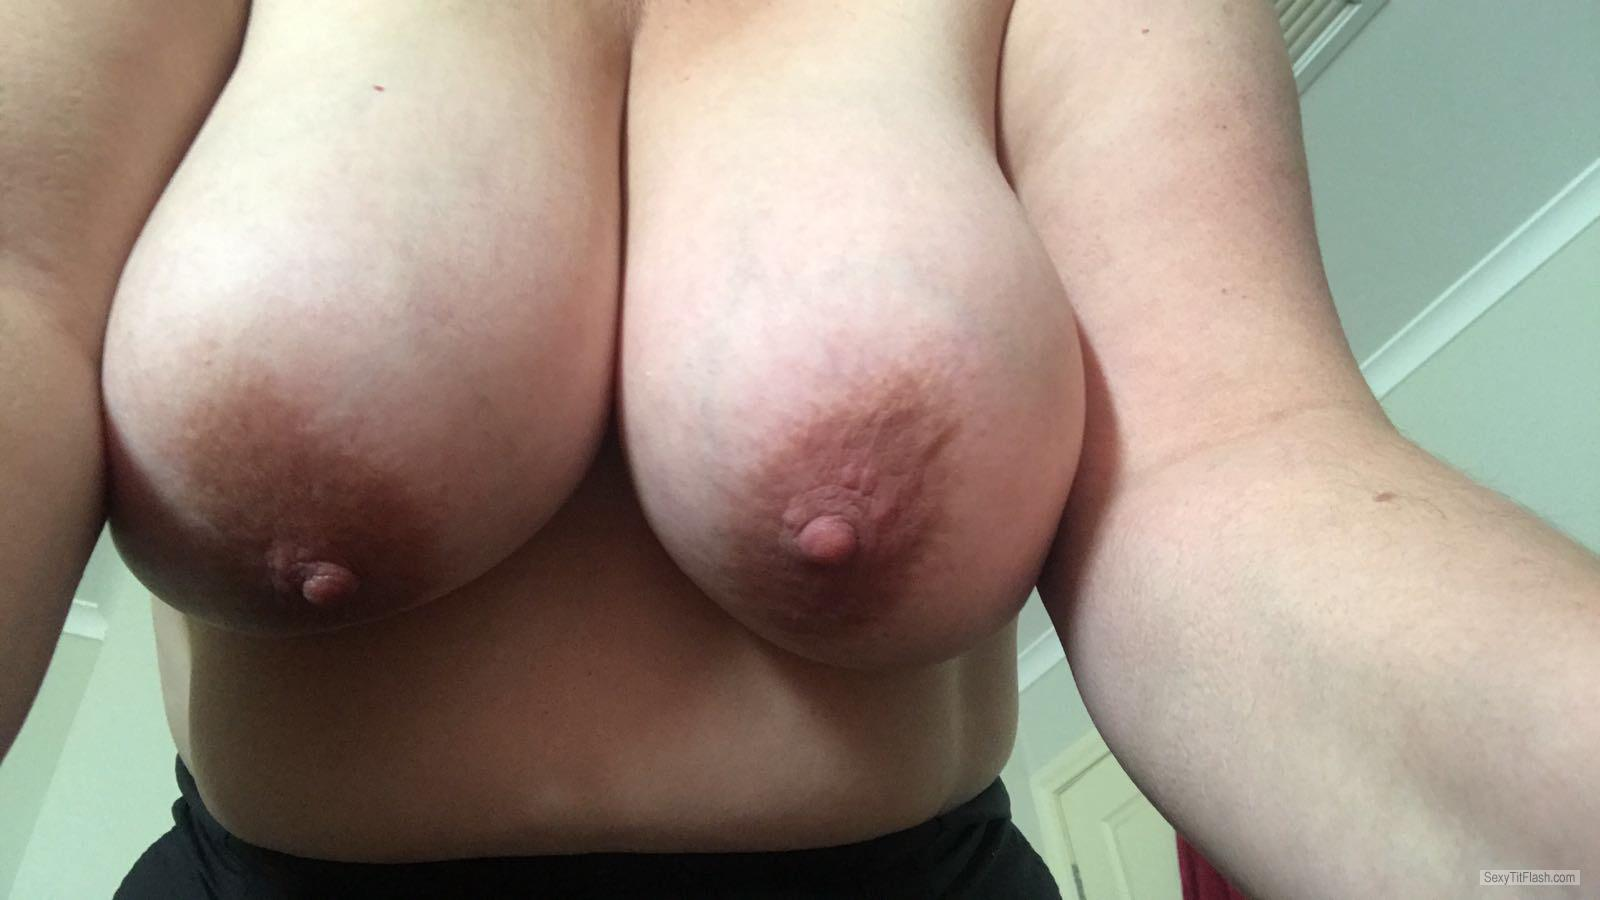 Very big Tits Of My Room Mate Selfie by Aussie Jenny